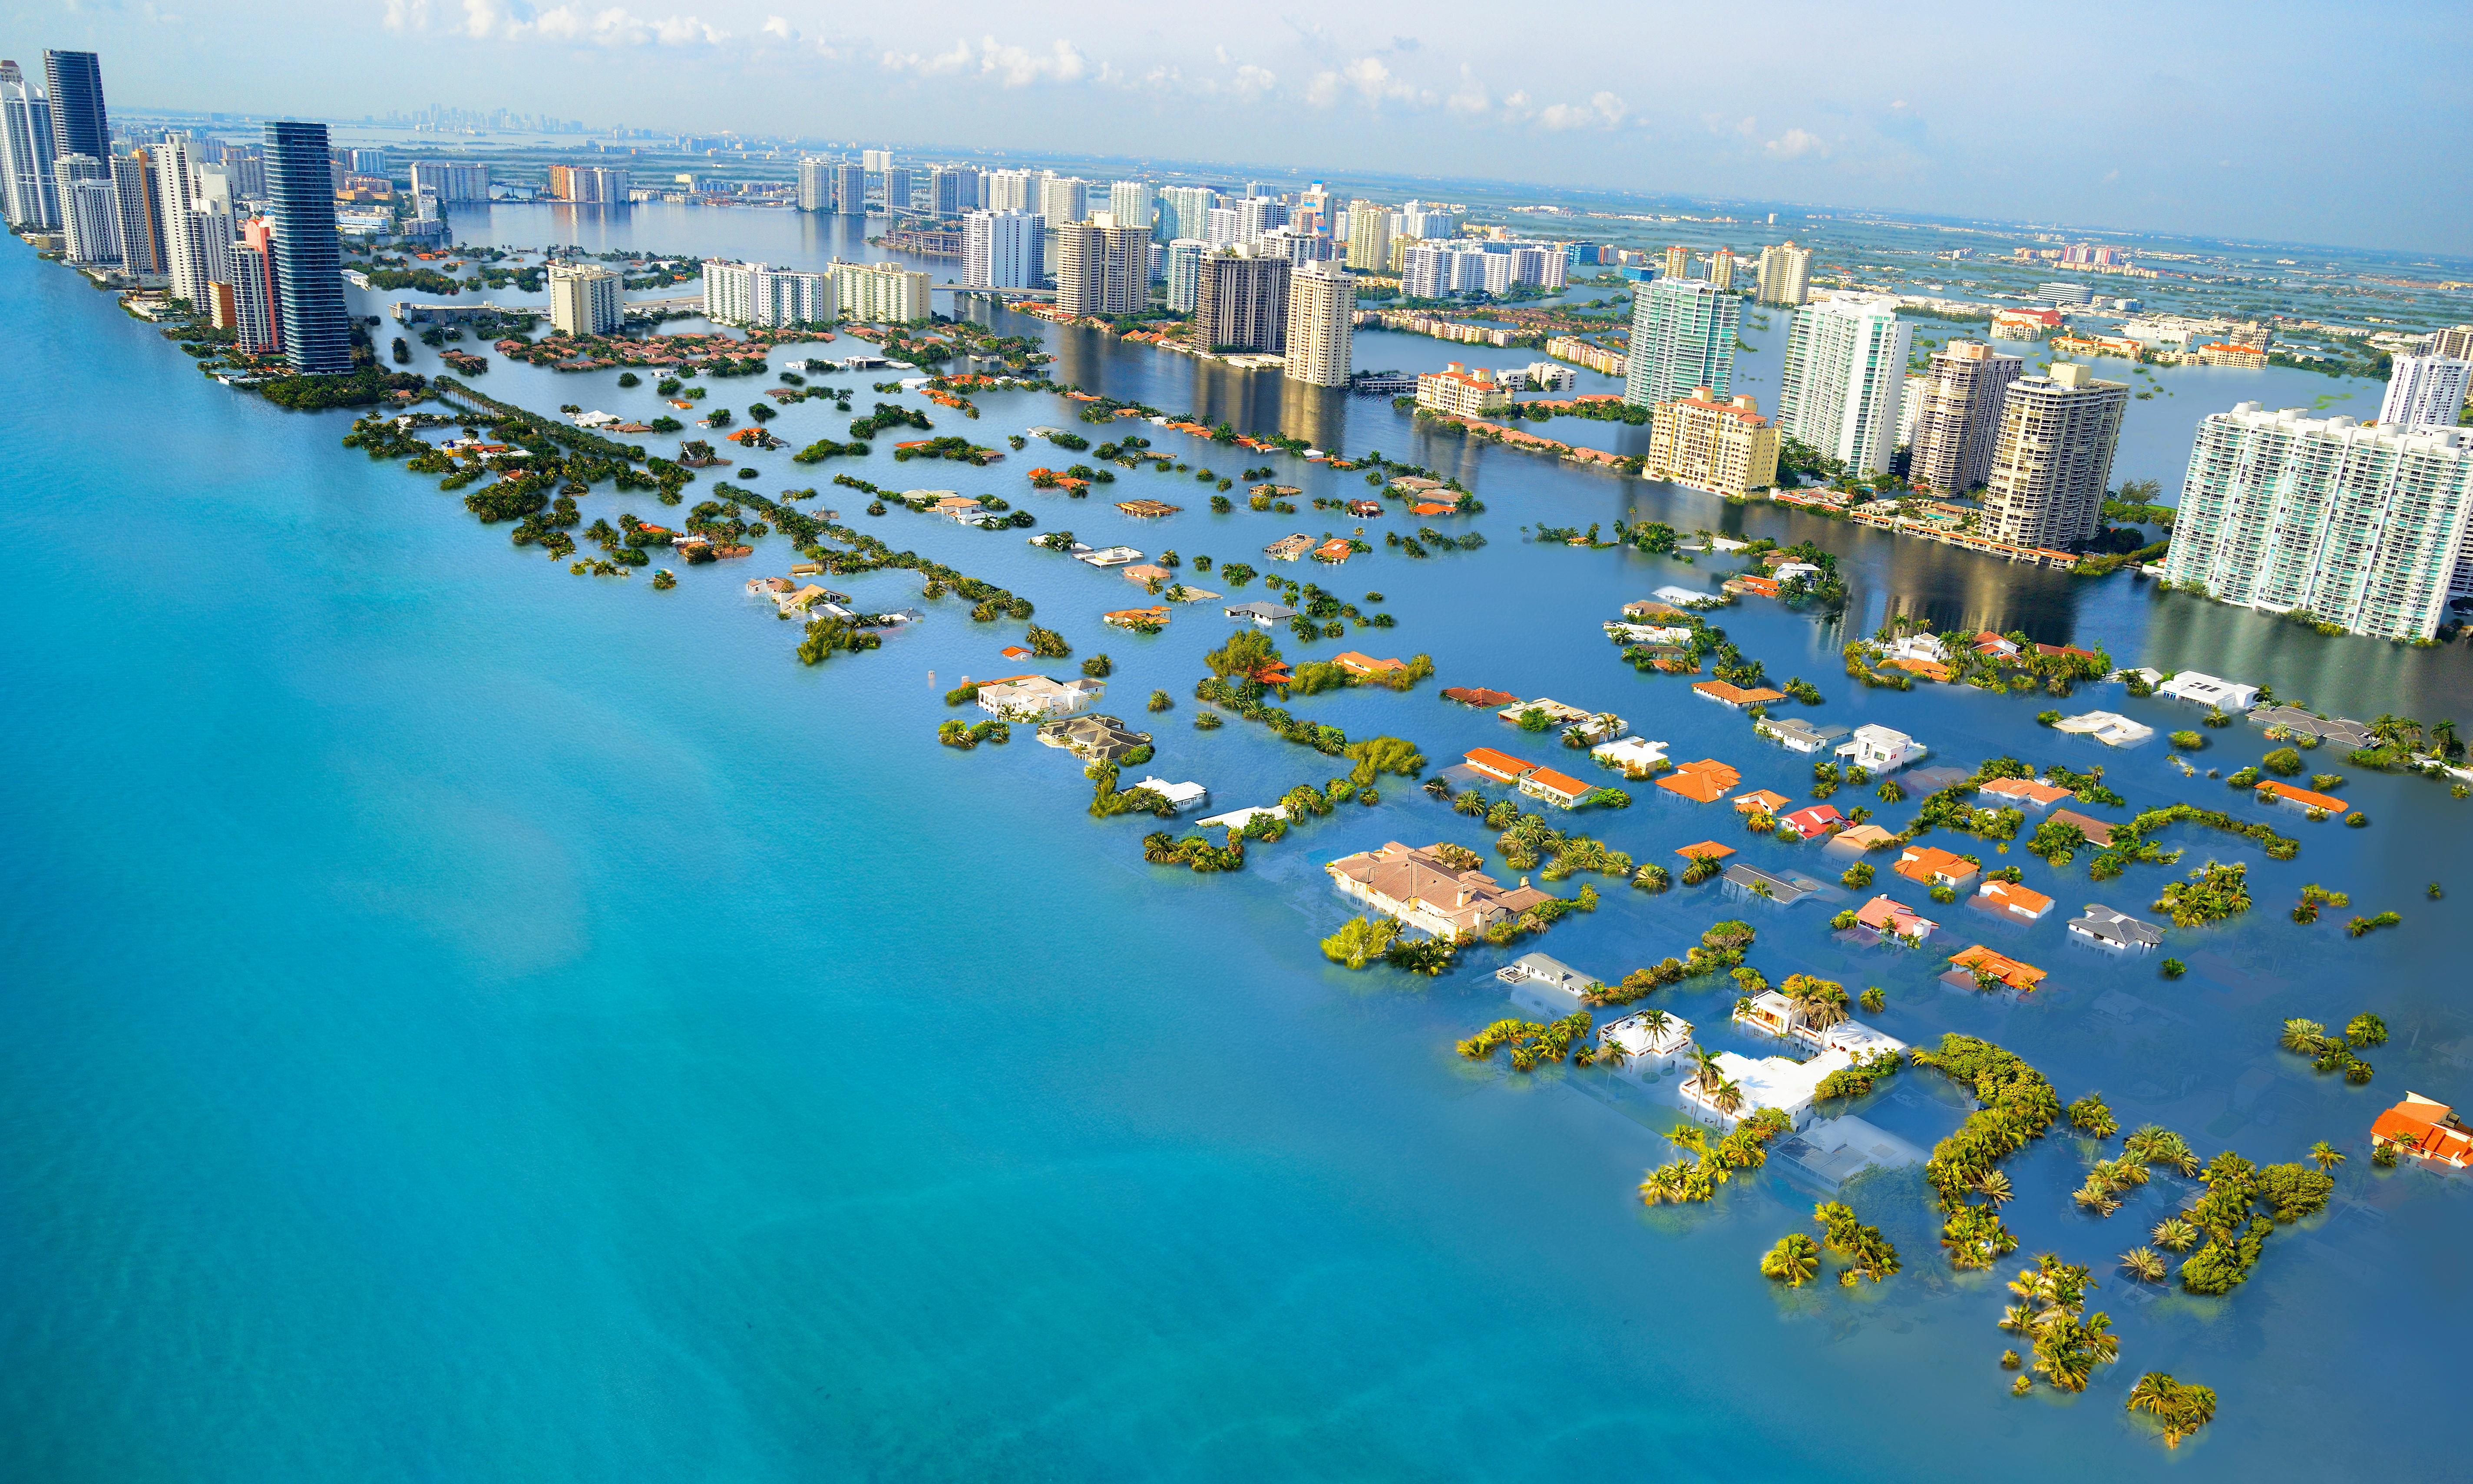 Sea levels set to keep rising for centuries even if emissions targets met